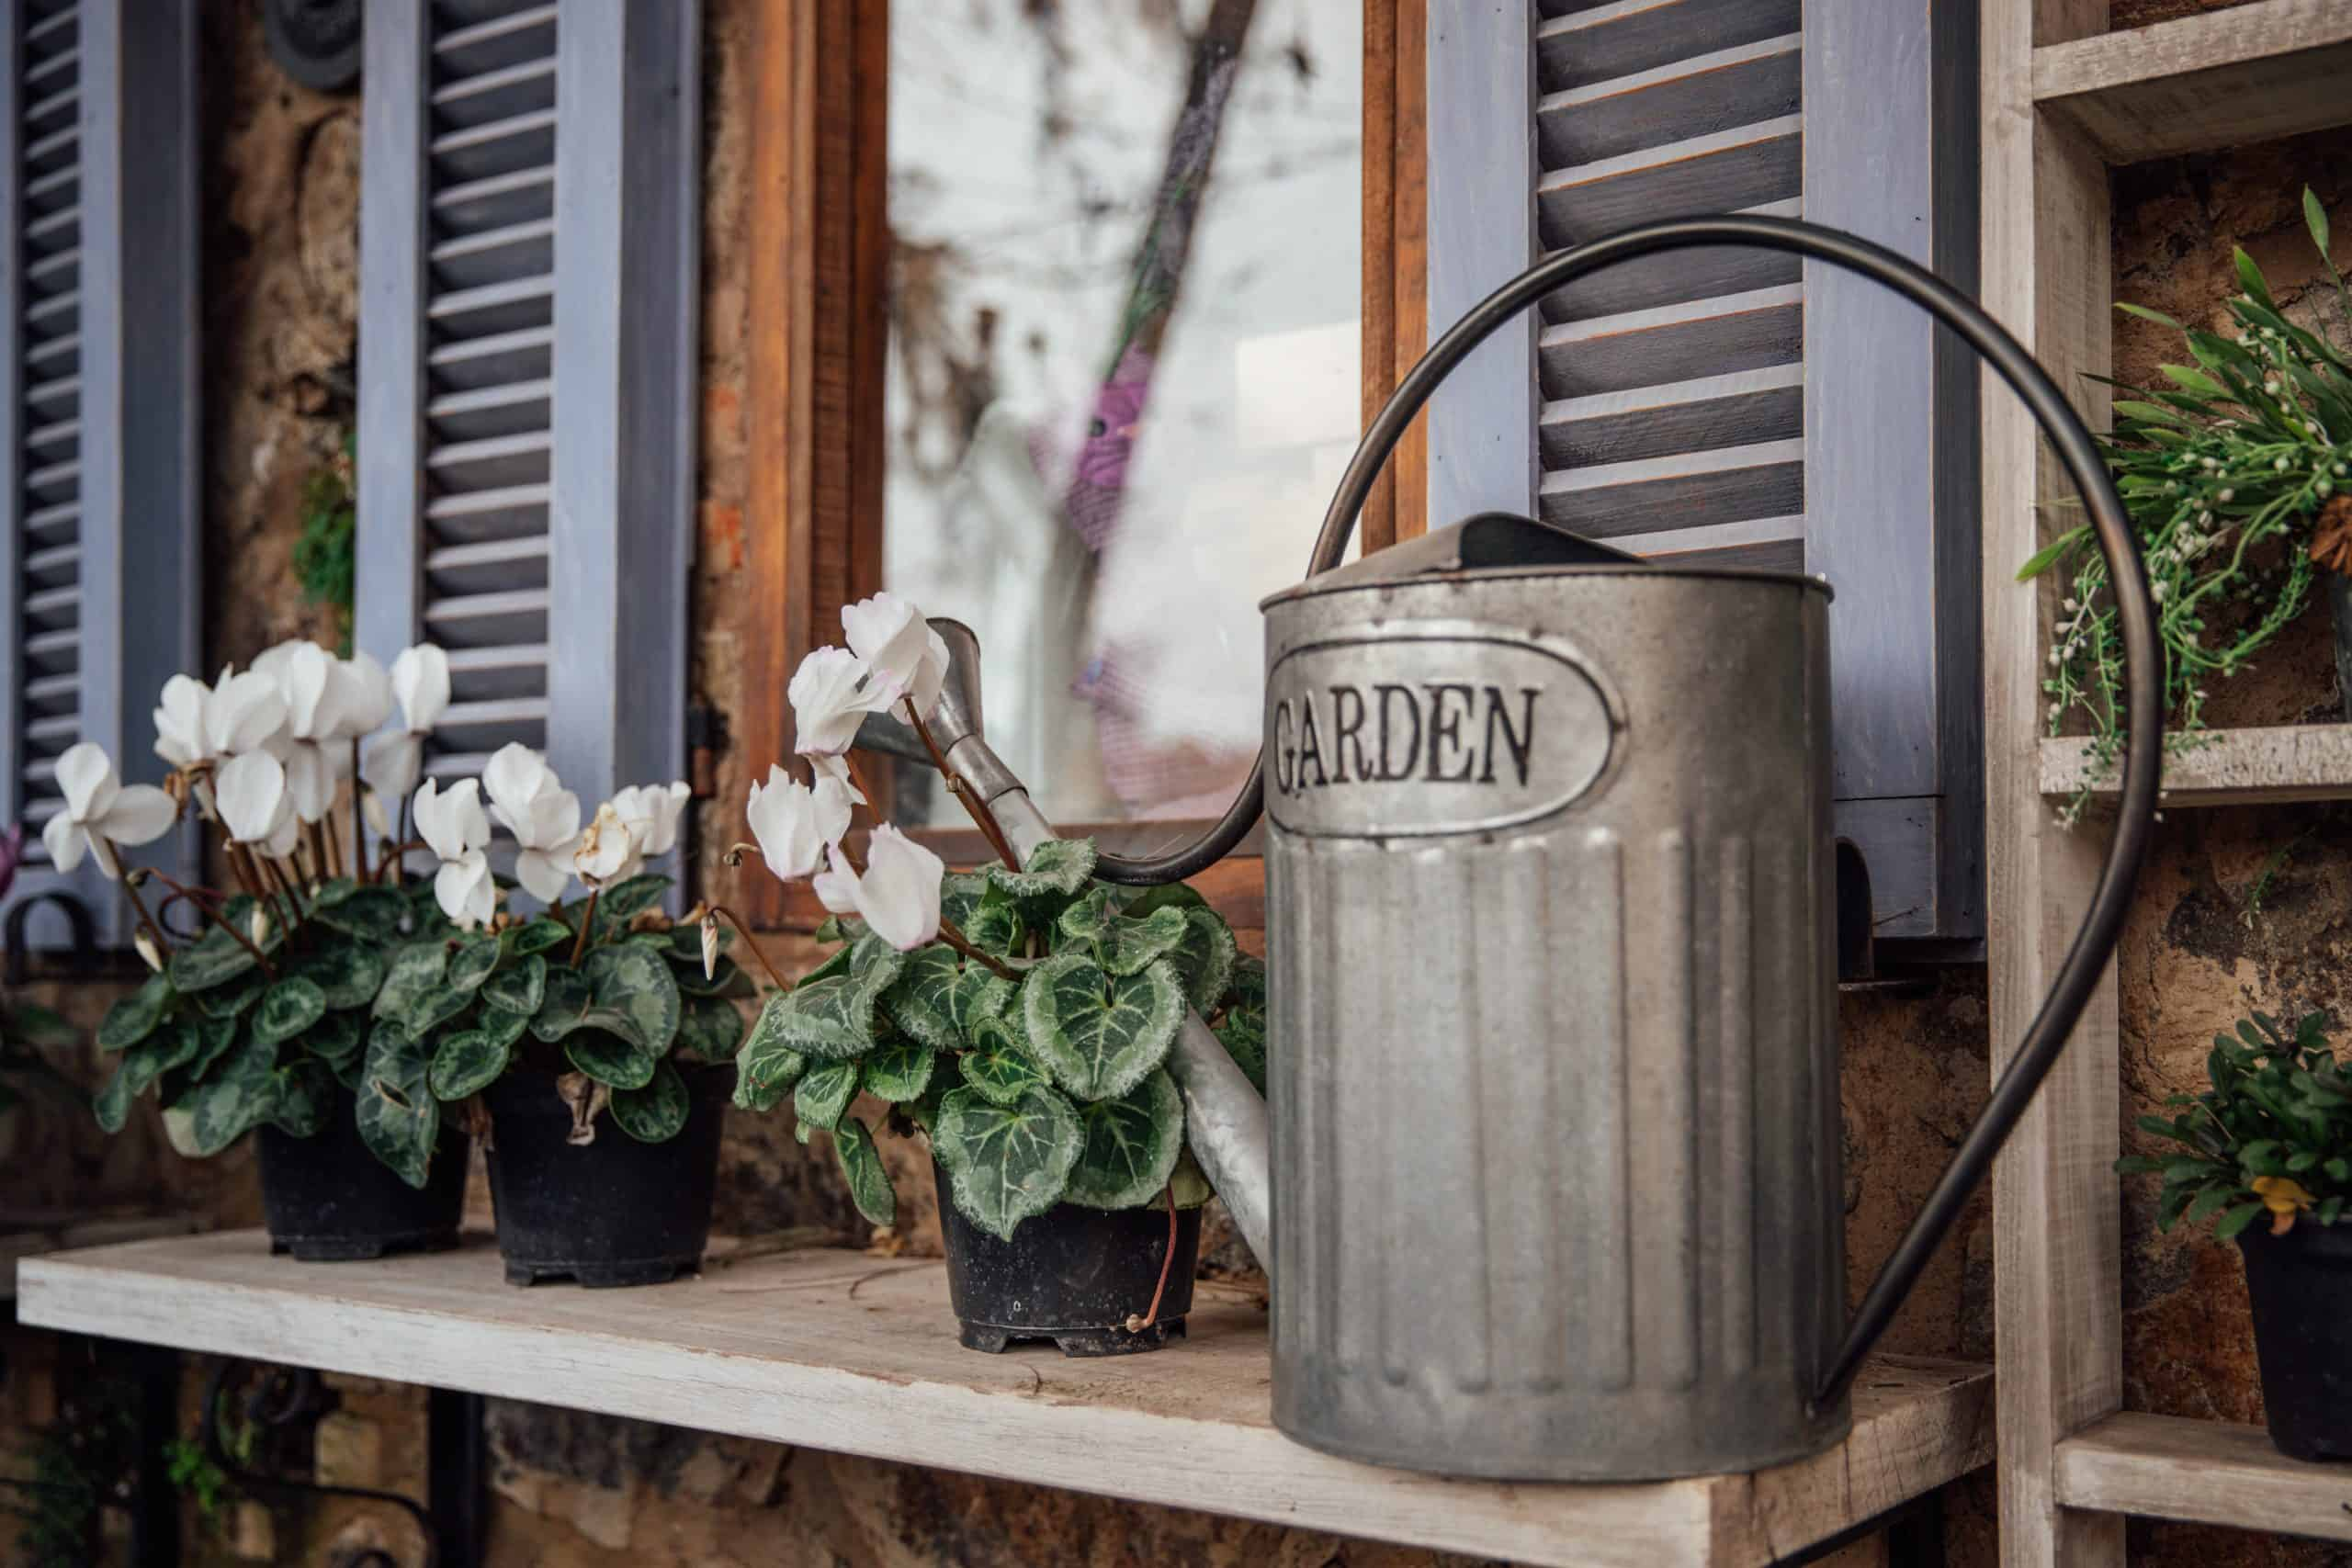 Watering Can Of Indoor Garden Can Also Be A Decorative Item